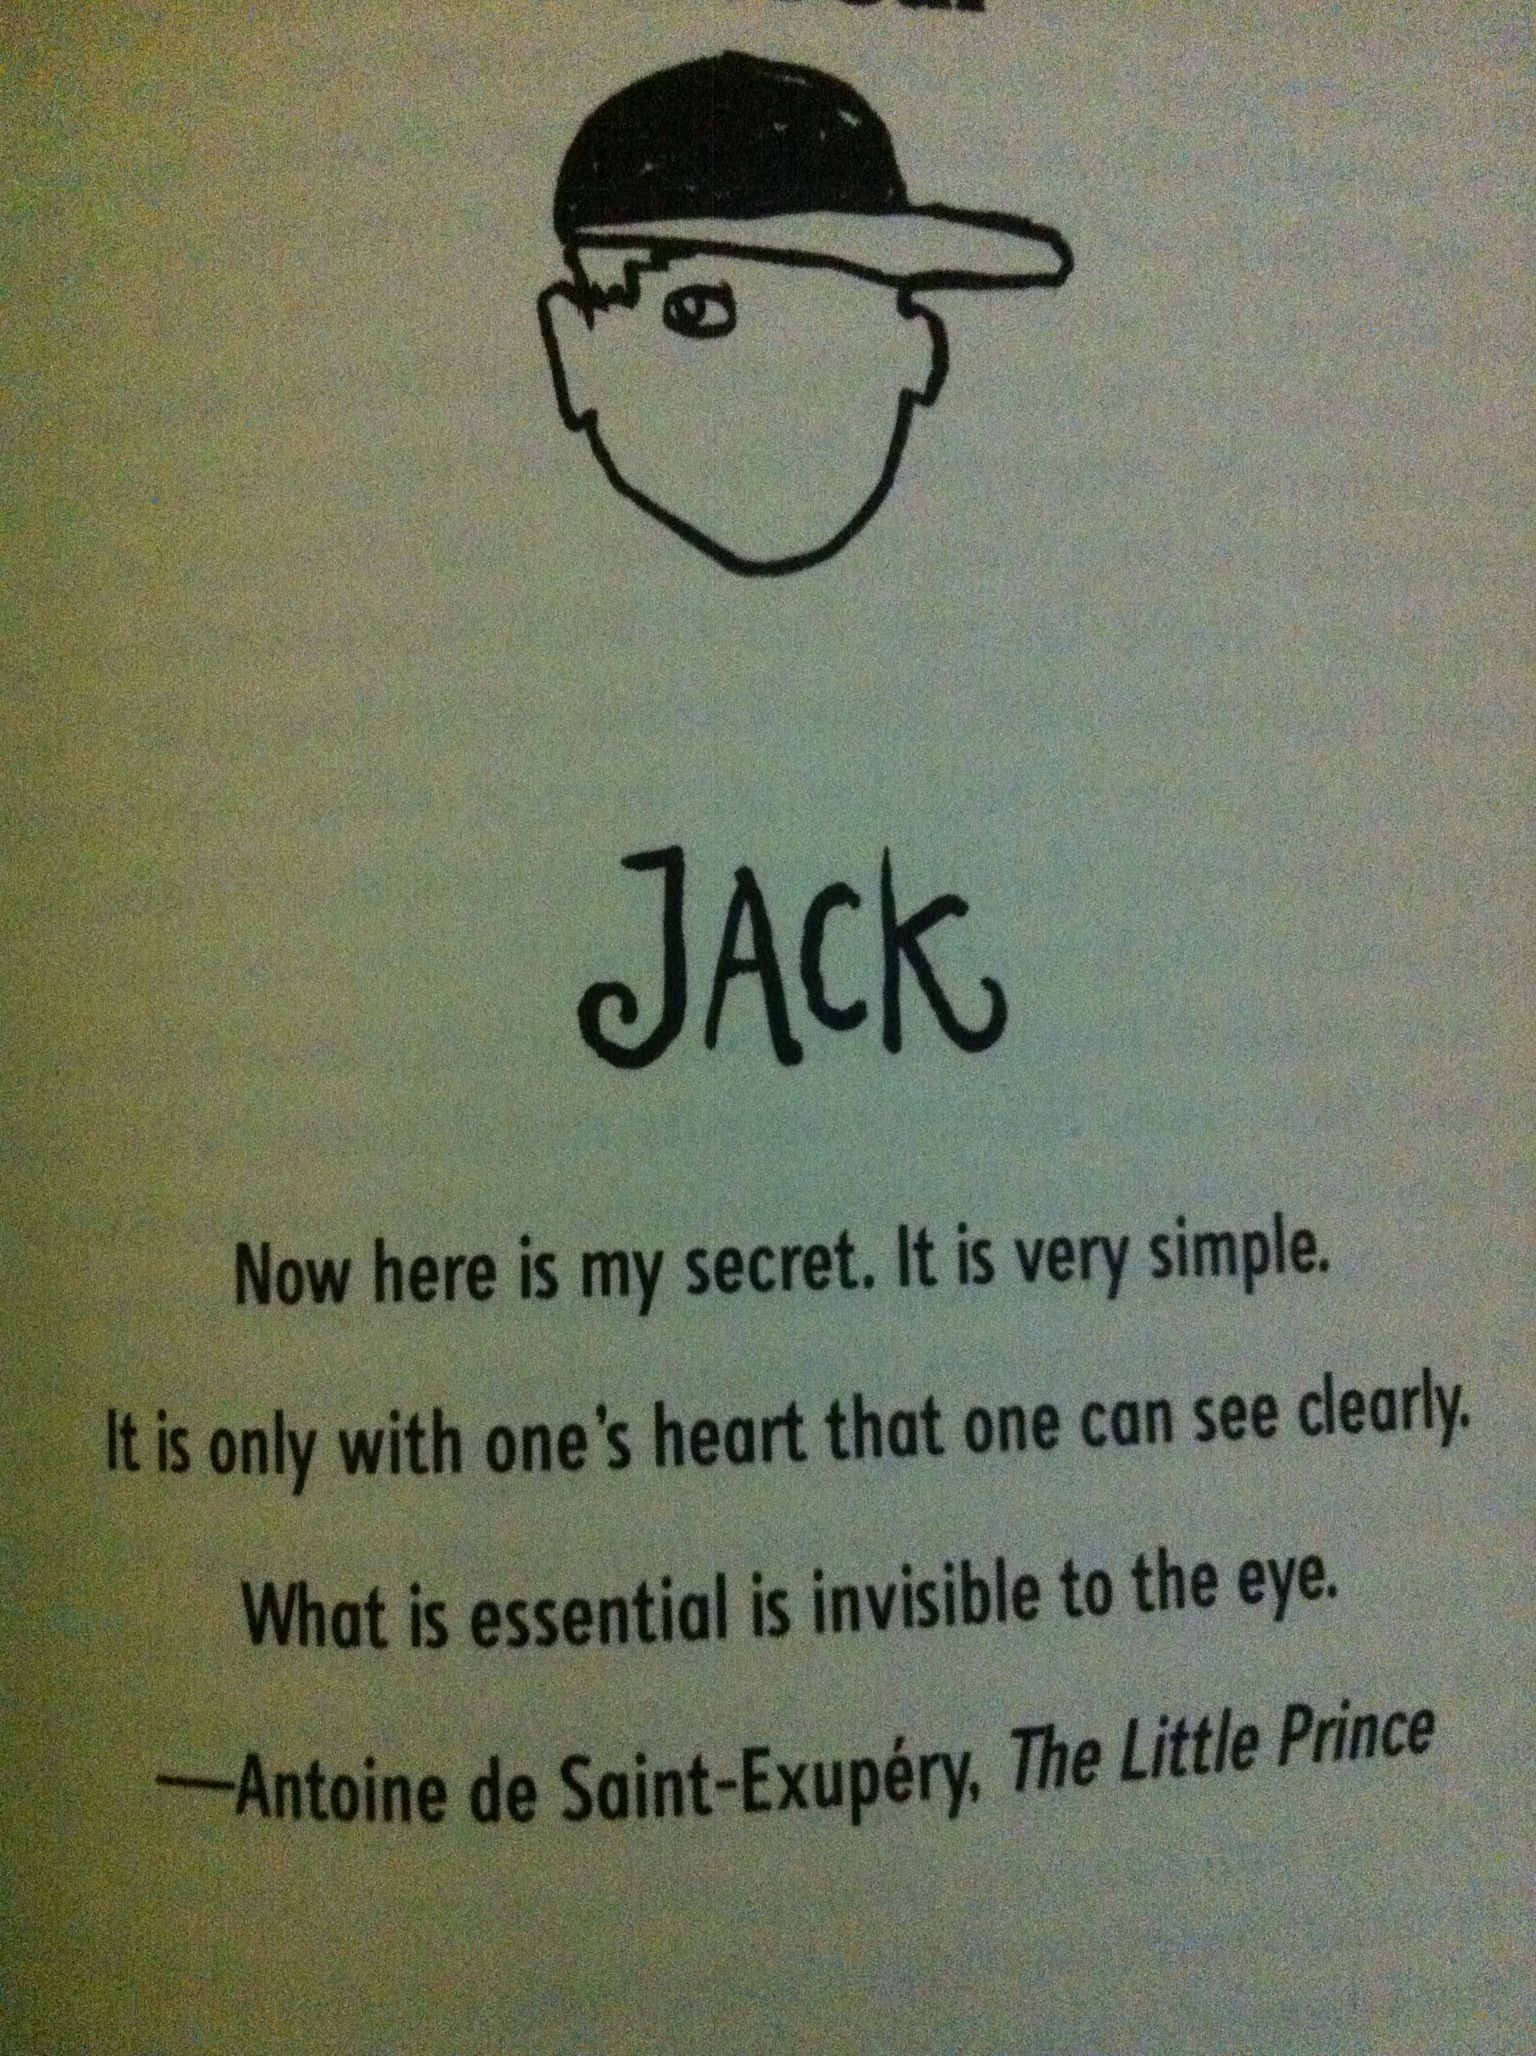 Quotes From Wonder Book Wonderr.j.palacio  Pride  Pinterest  Books Rj